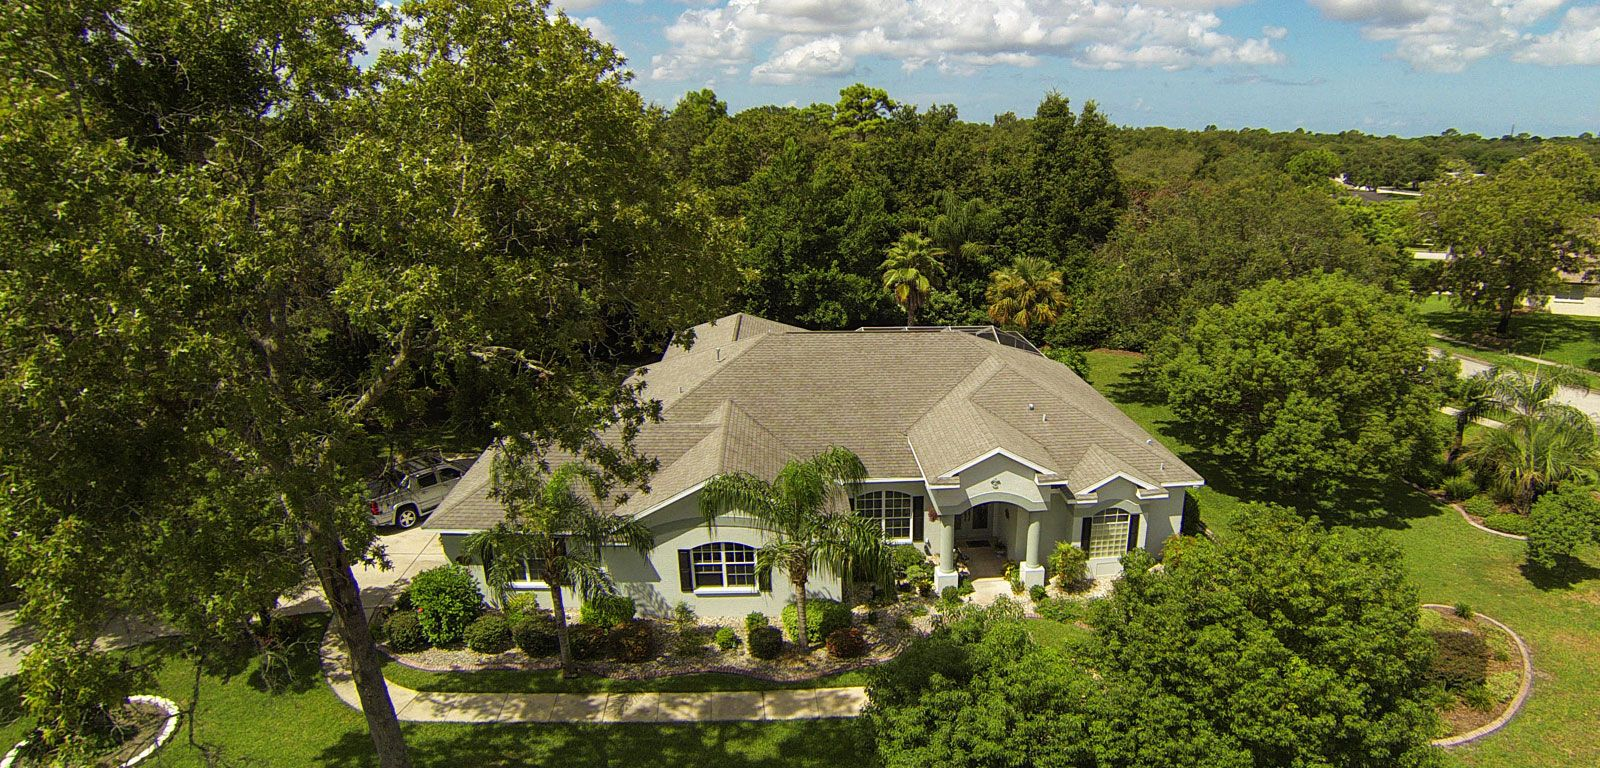 Aerial photo of a luxury house in the middle of green trees